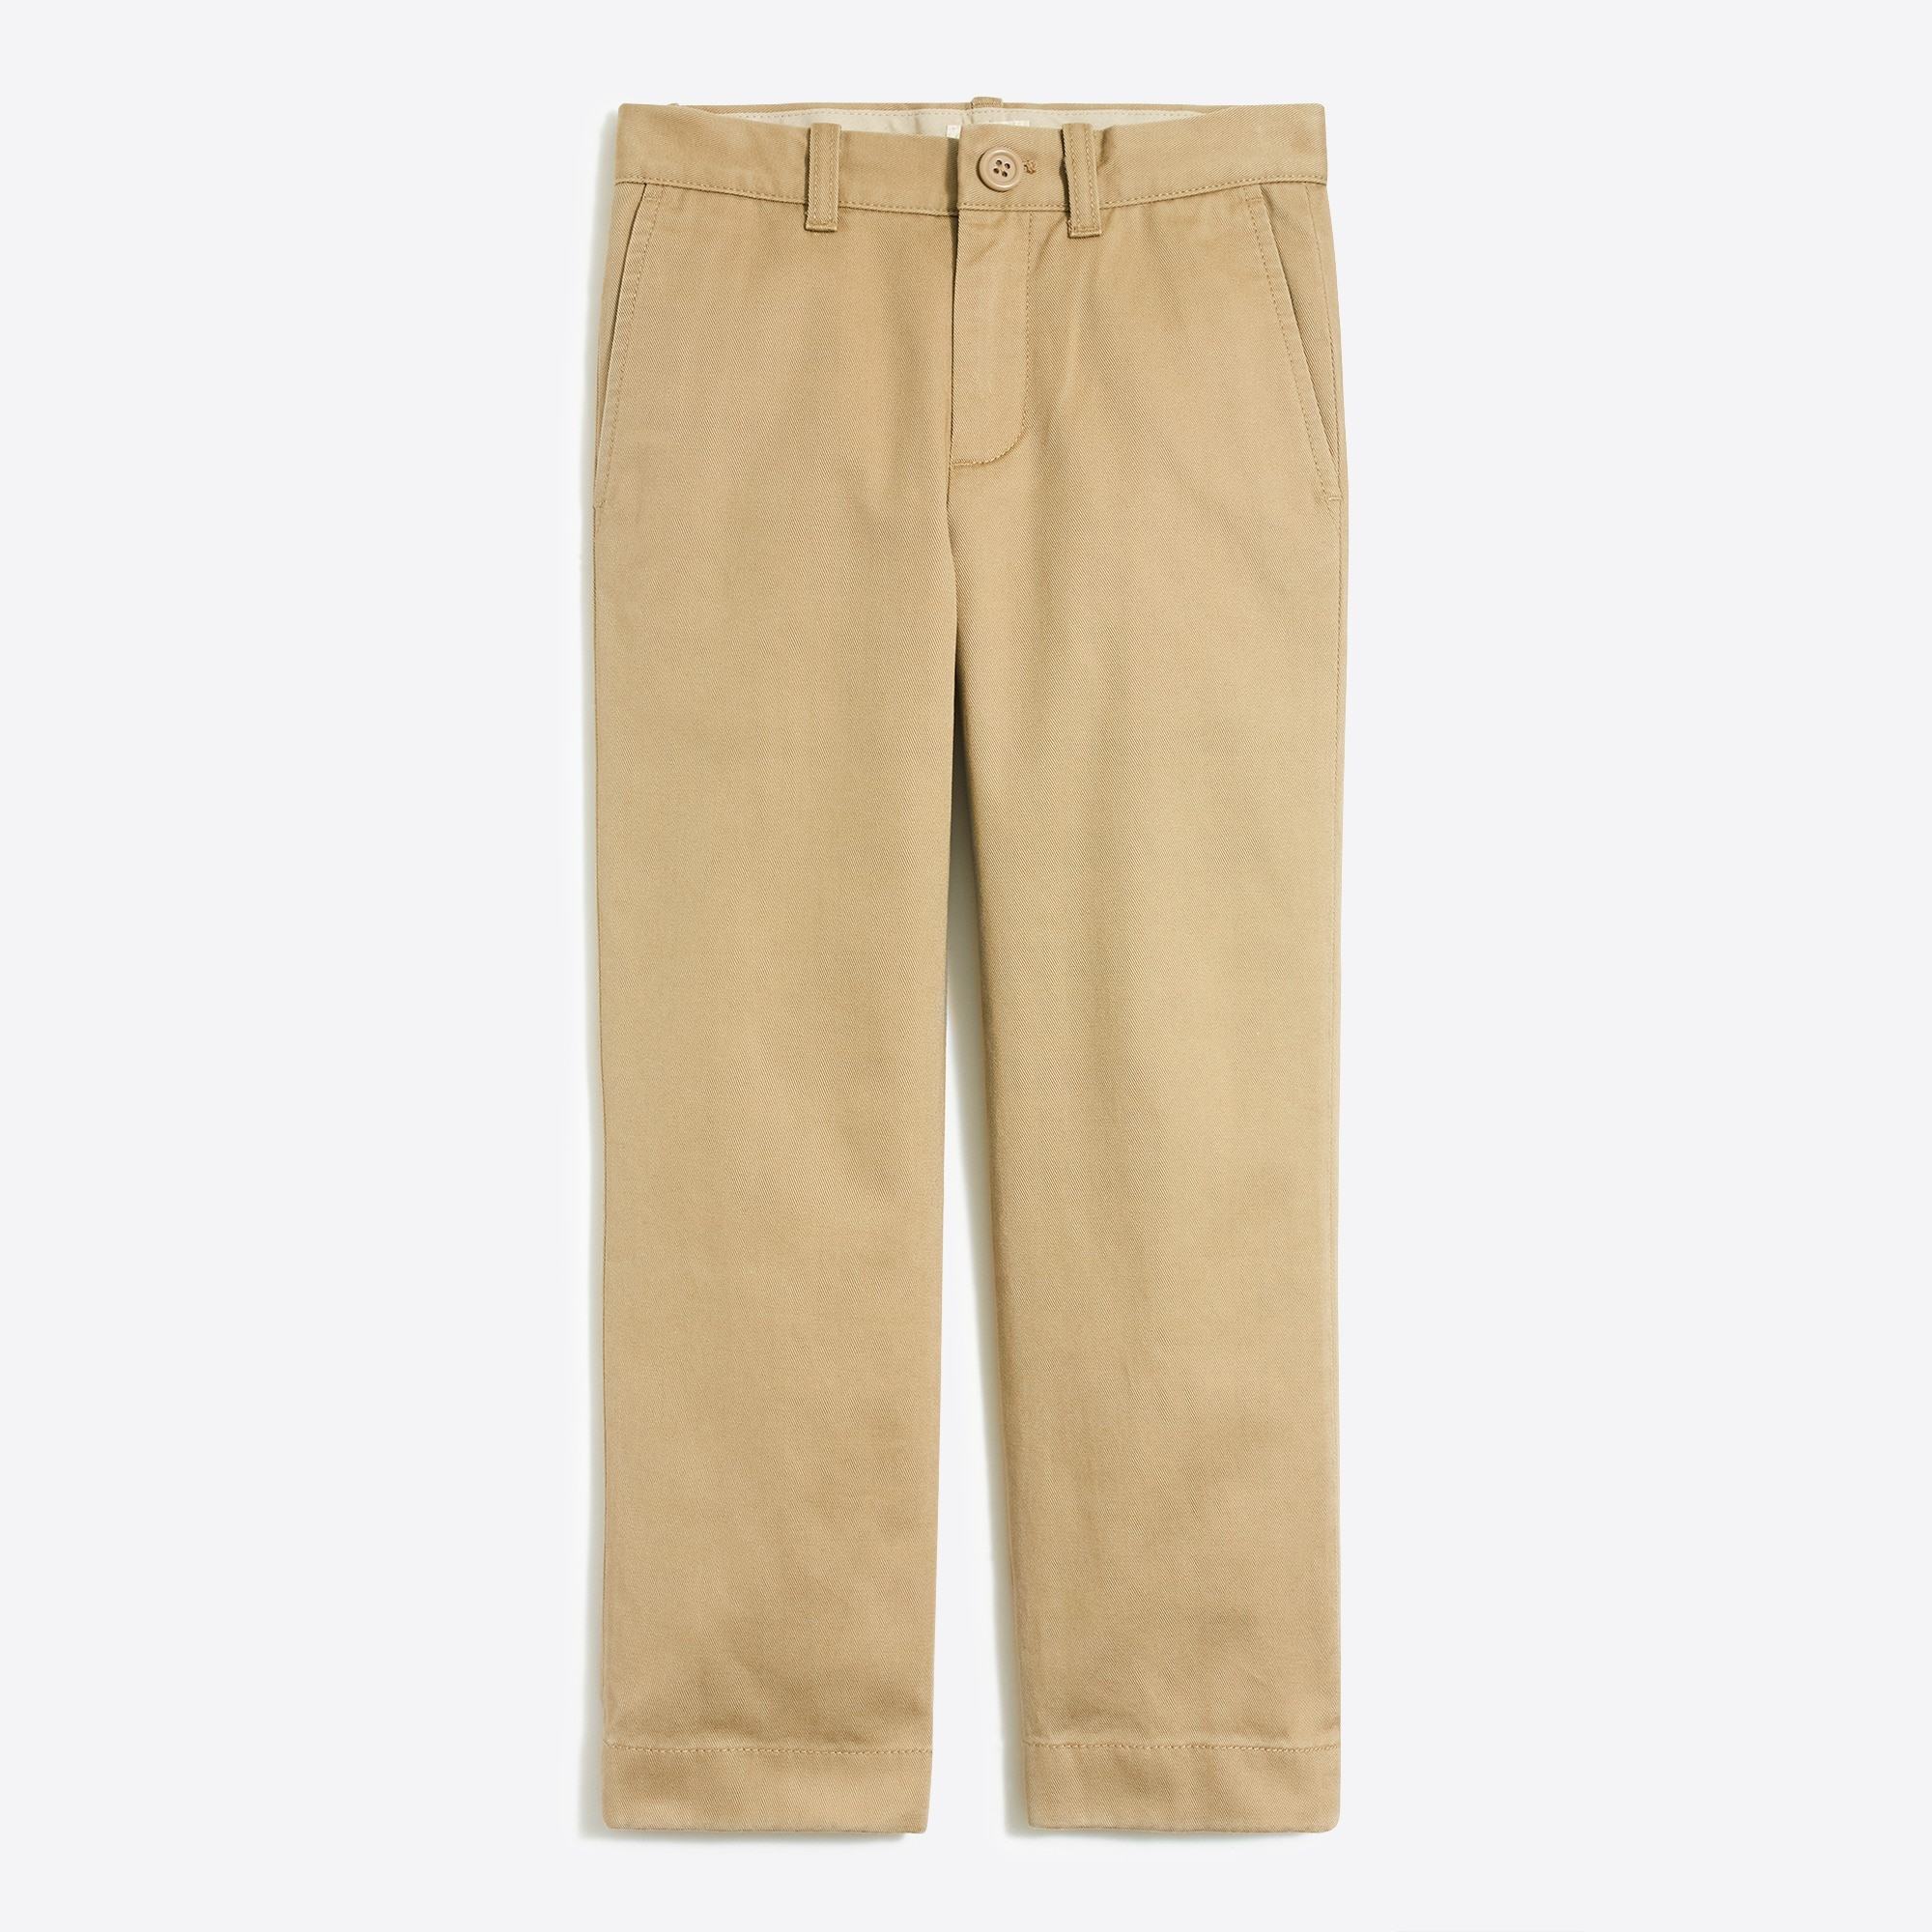 Boys' straight chino factoryboys online exclusives c